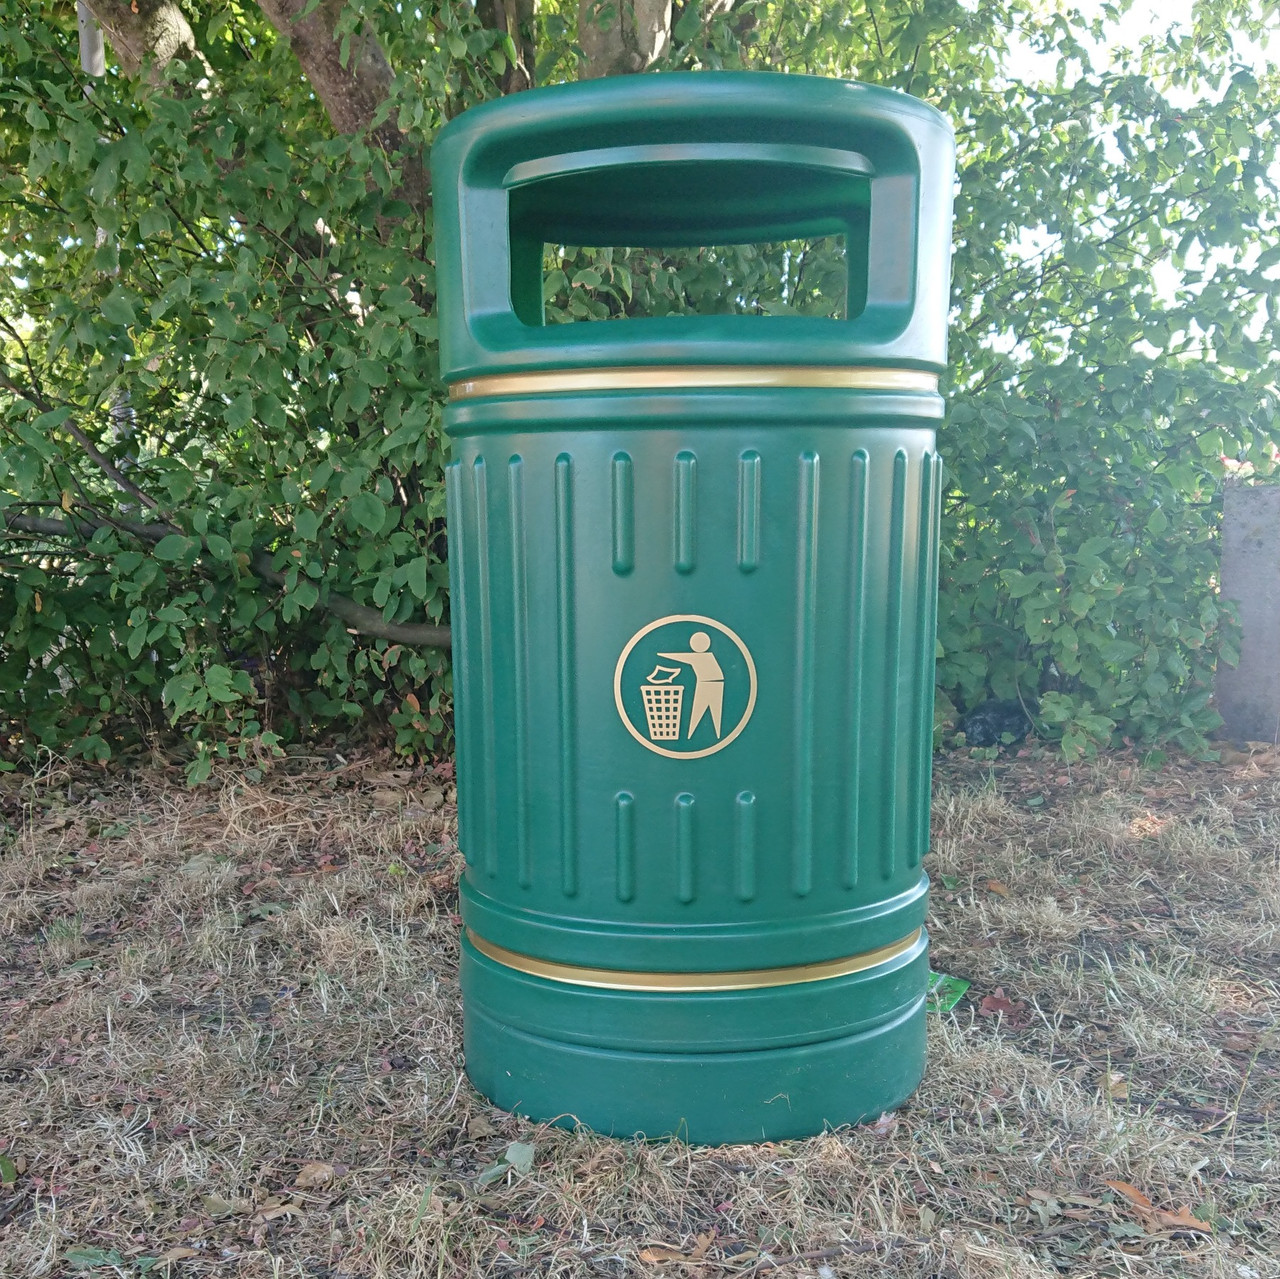 Green Centurion outdoor litter bin